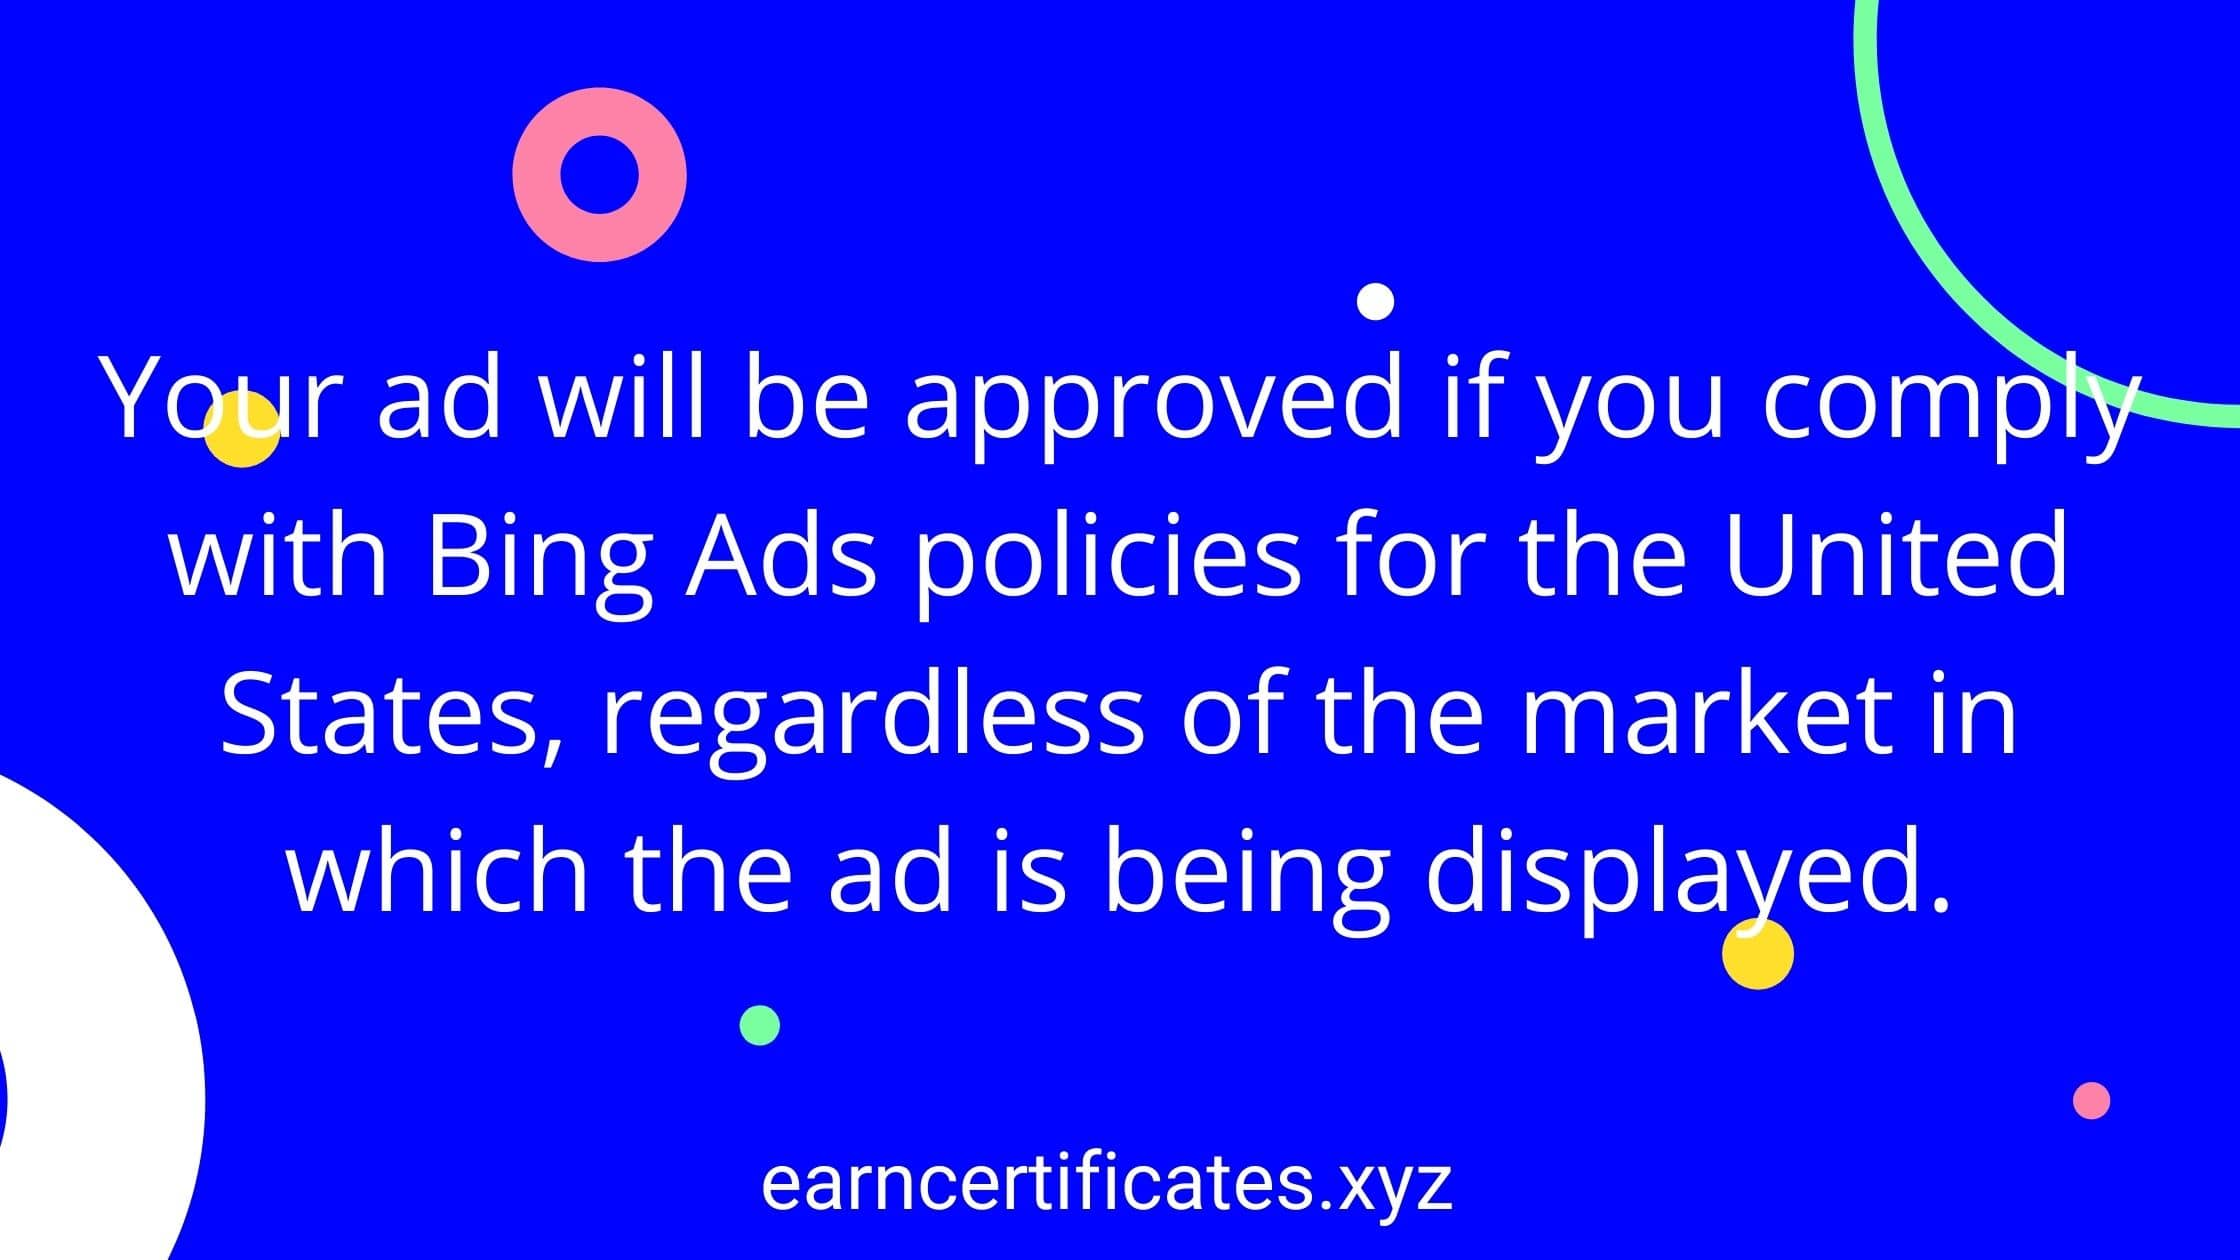 Your ad will be approved if you comply with Bing Ads policies for the United States, regardless of the market in which the ad is being displayed.